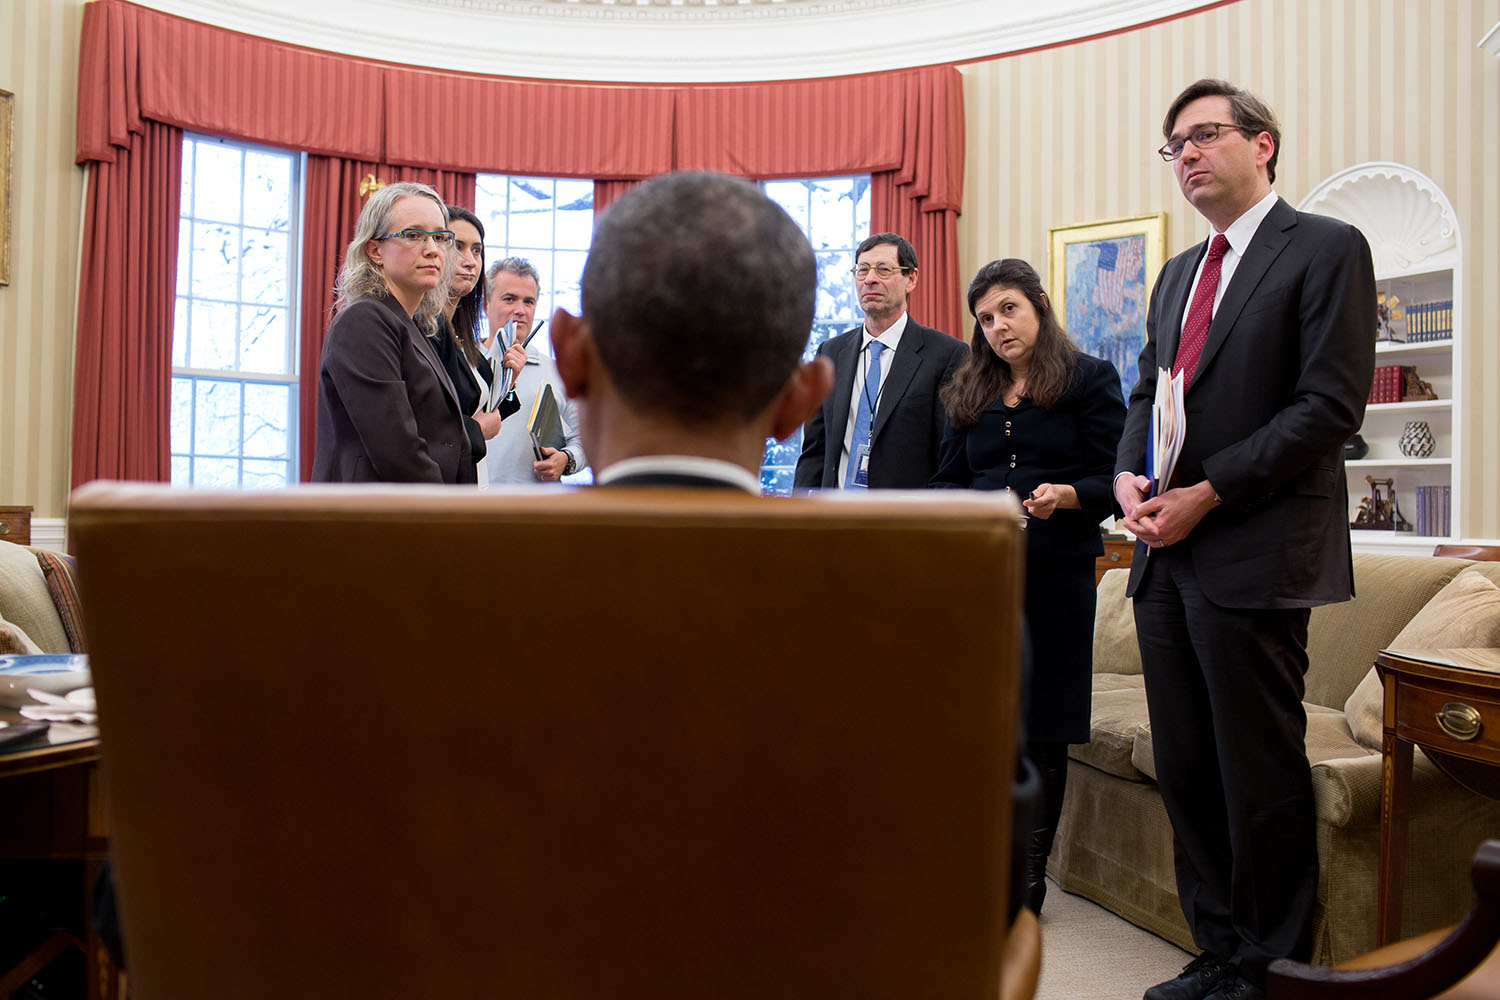 Obstfeld (third from right) in a meeting with [[Barack Obama]]